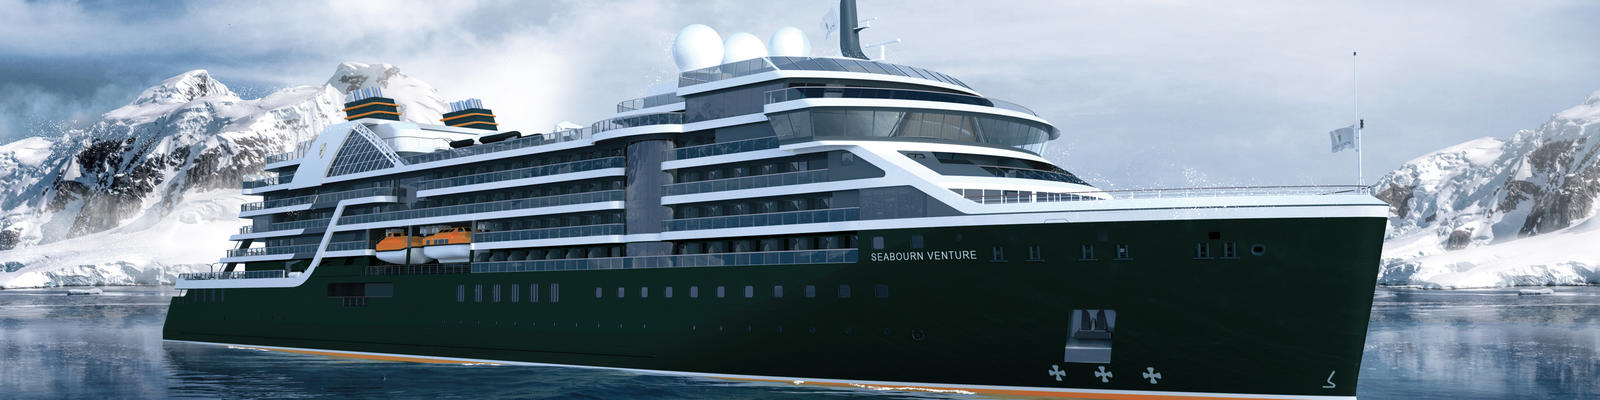 Rendering of Seabourn Venture, with snow-capped mountains in the background